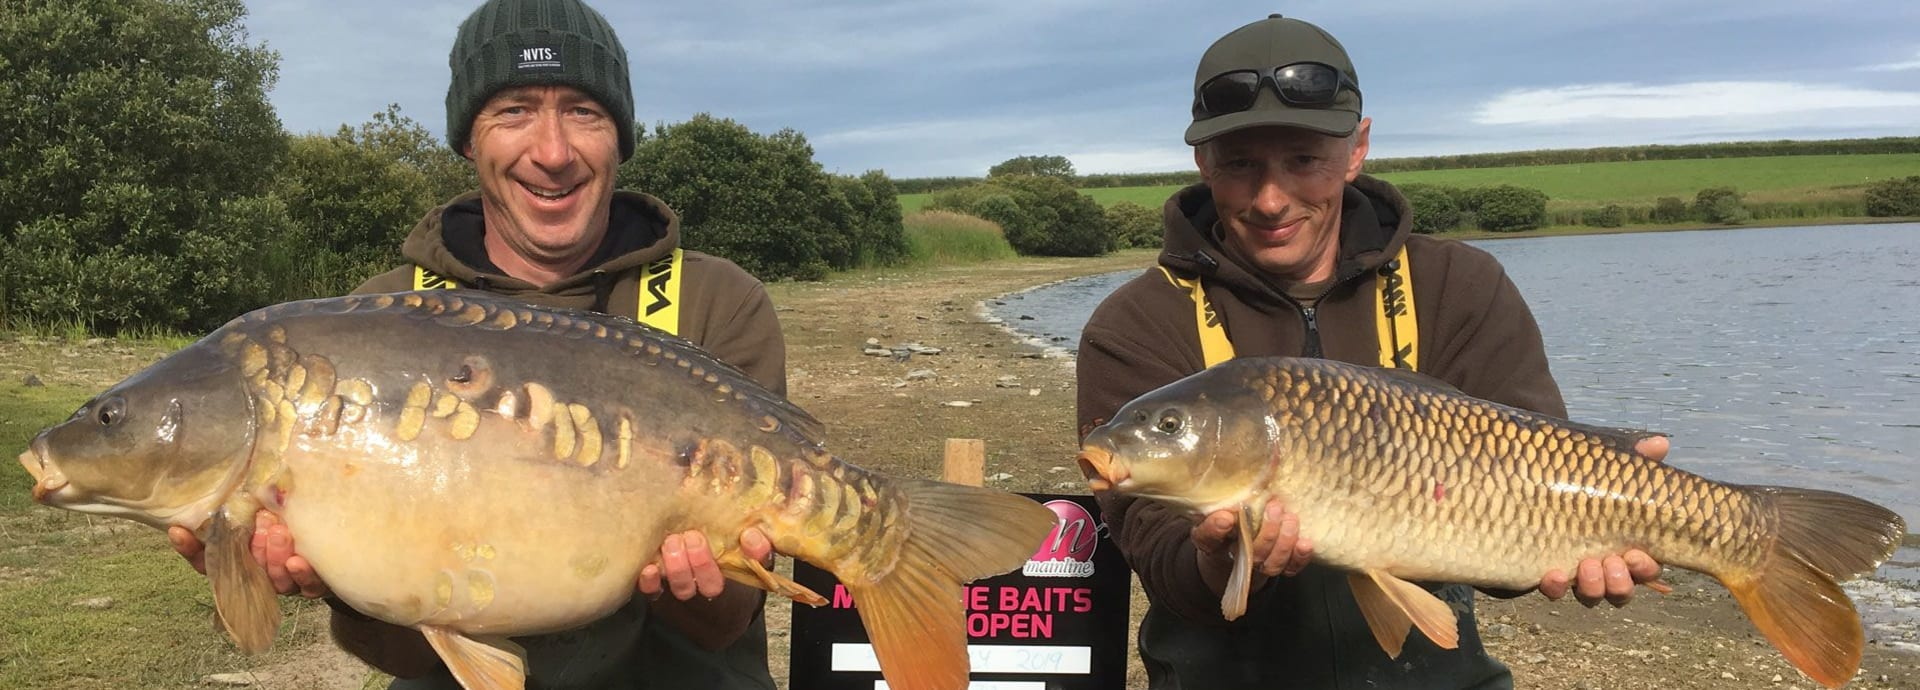 coarse-fishing-competitions-and-events